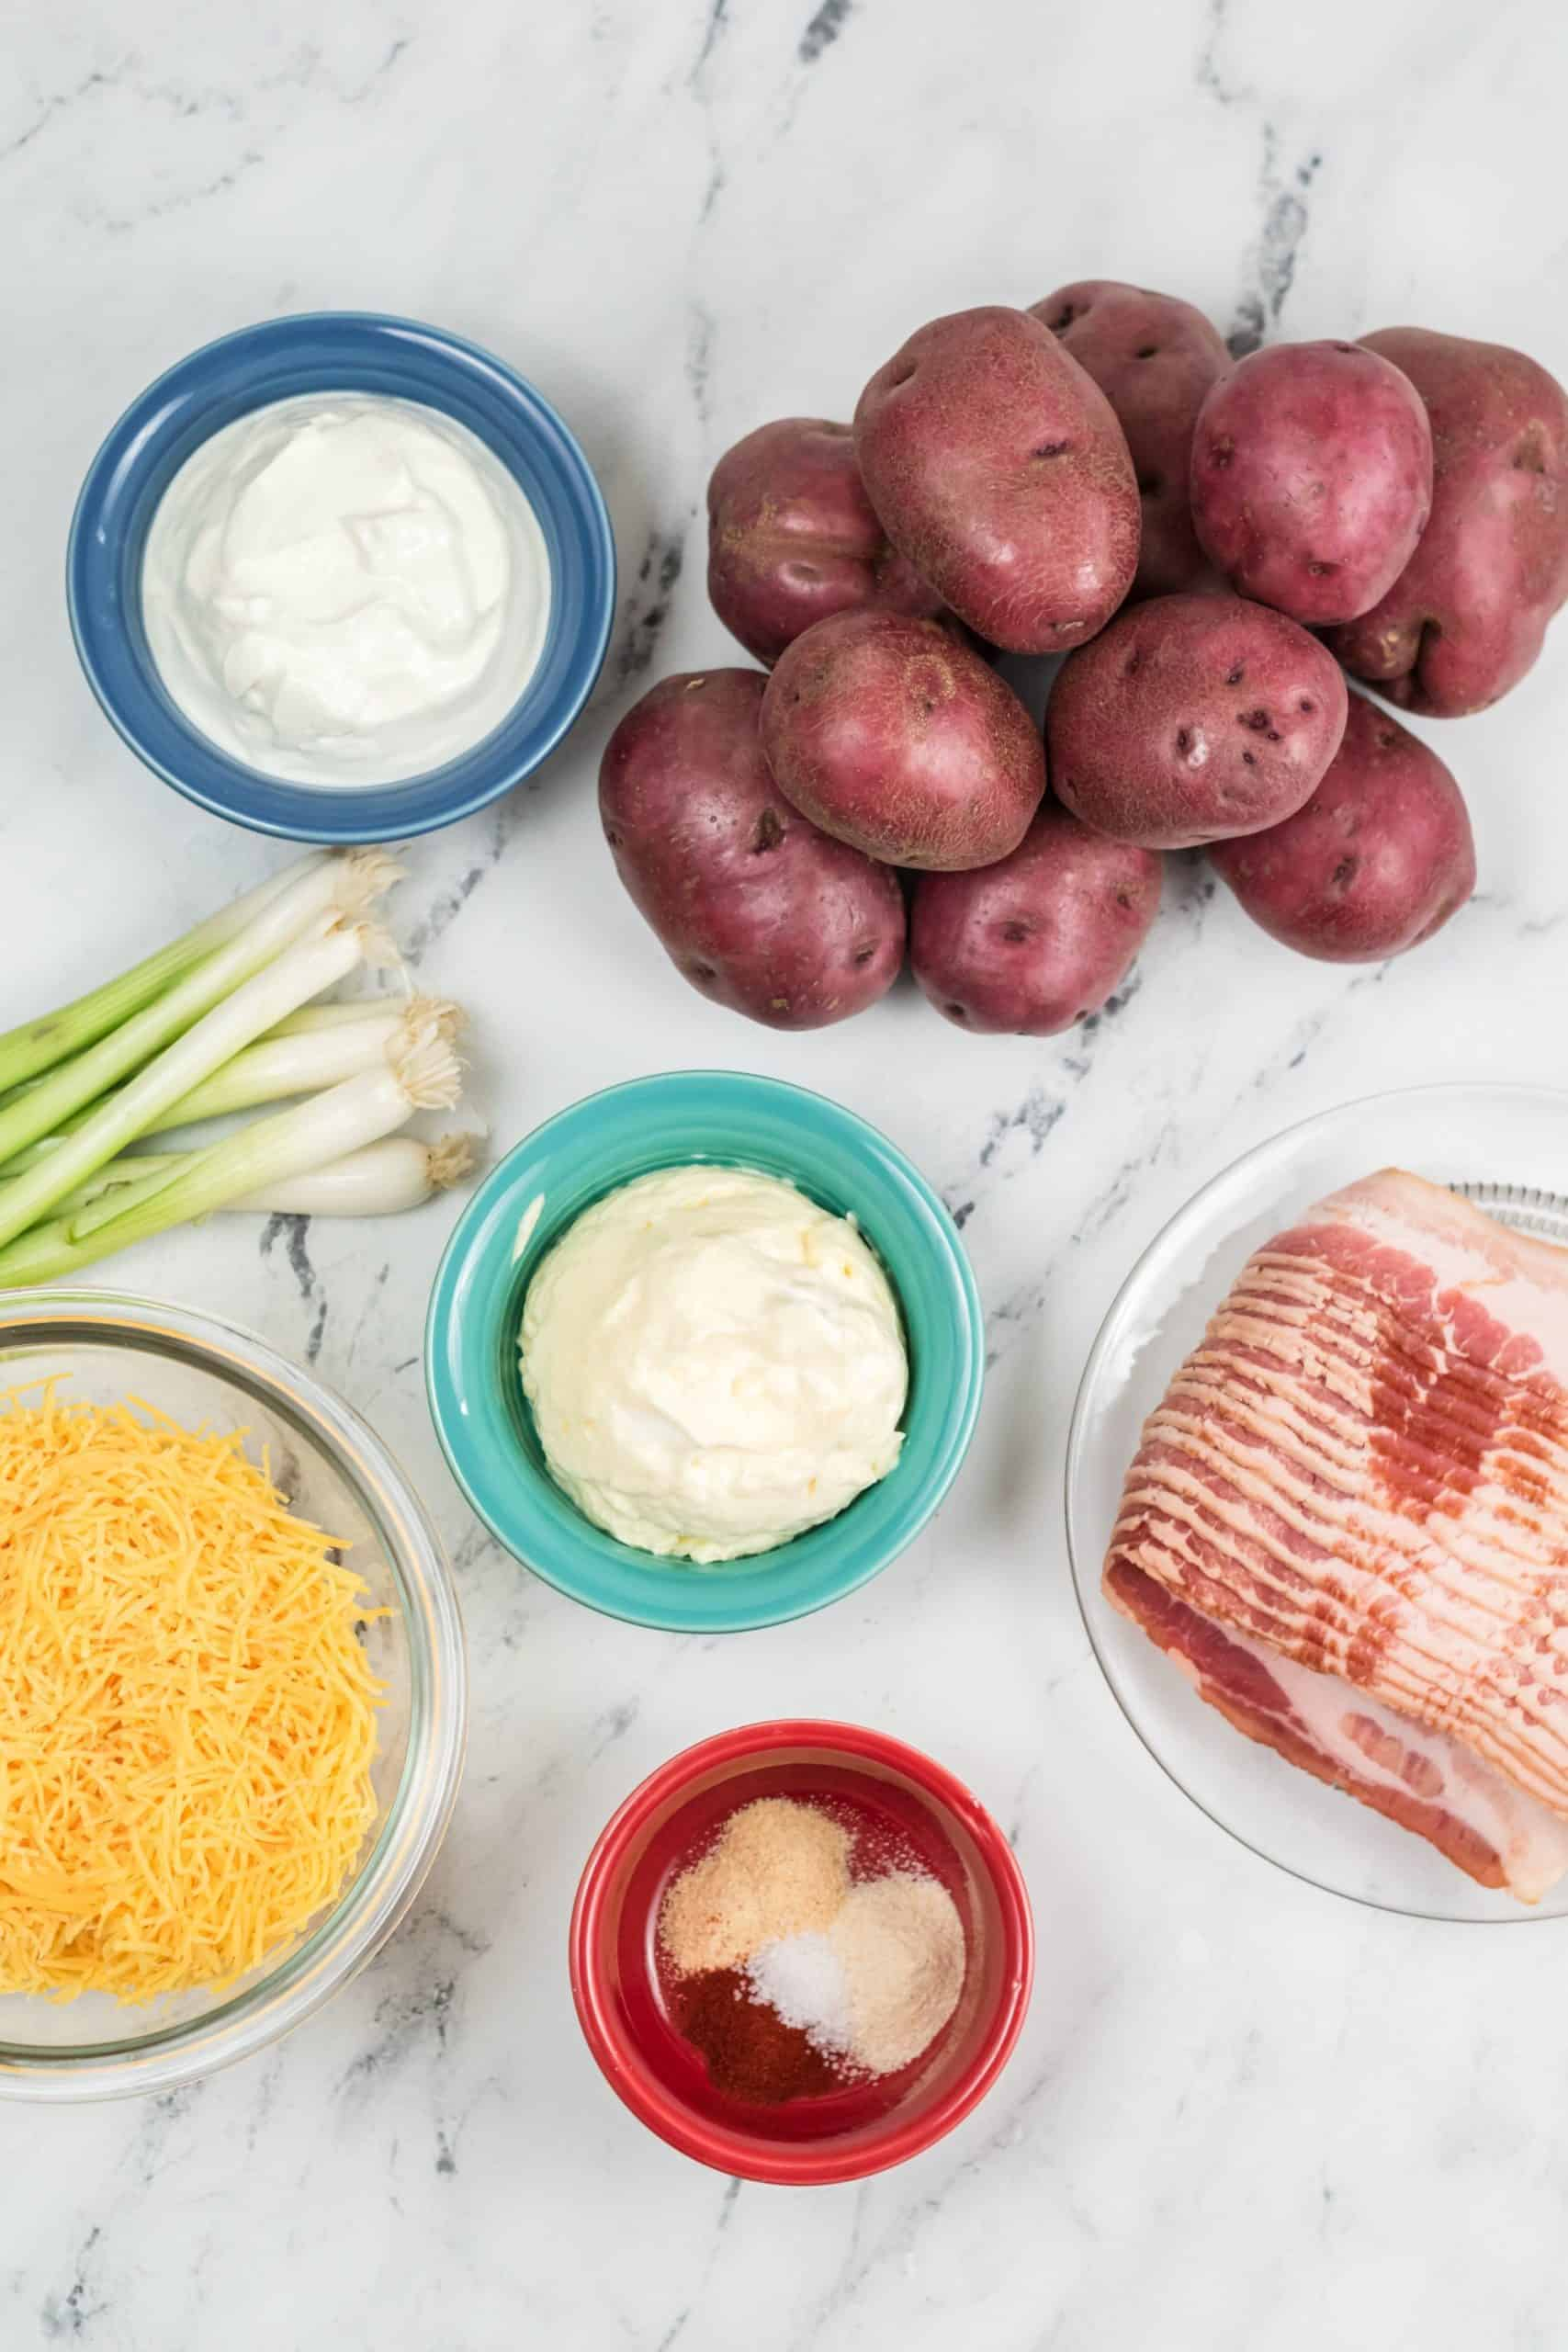 Potatoes scallions cheese bacon butter and sour cream in bowls.